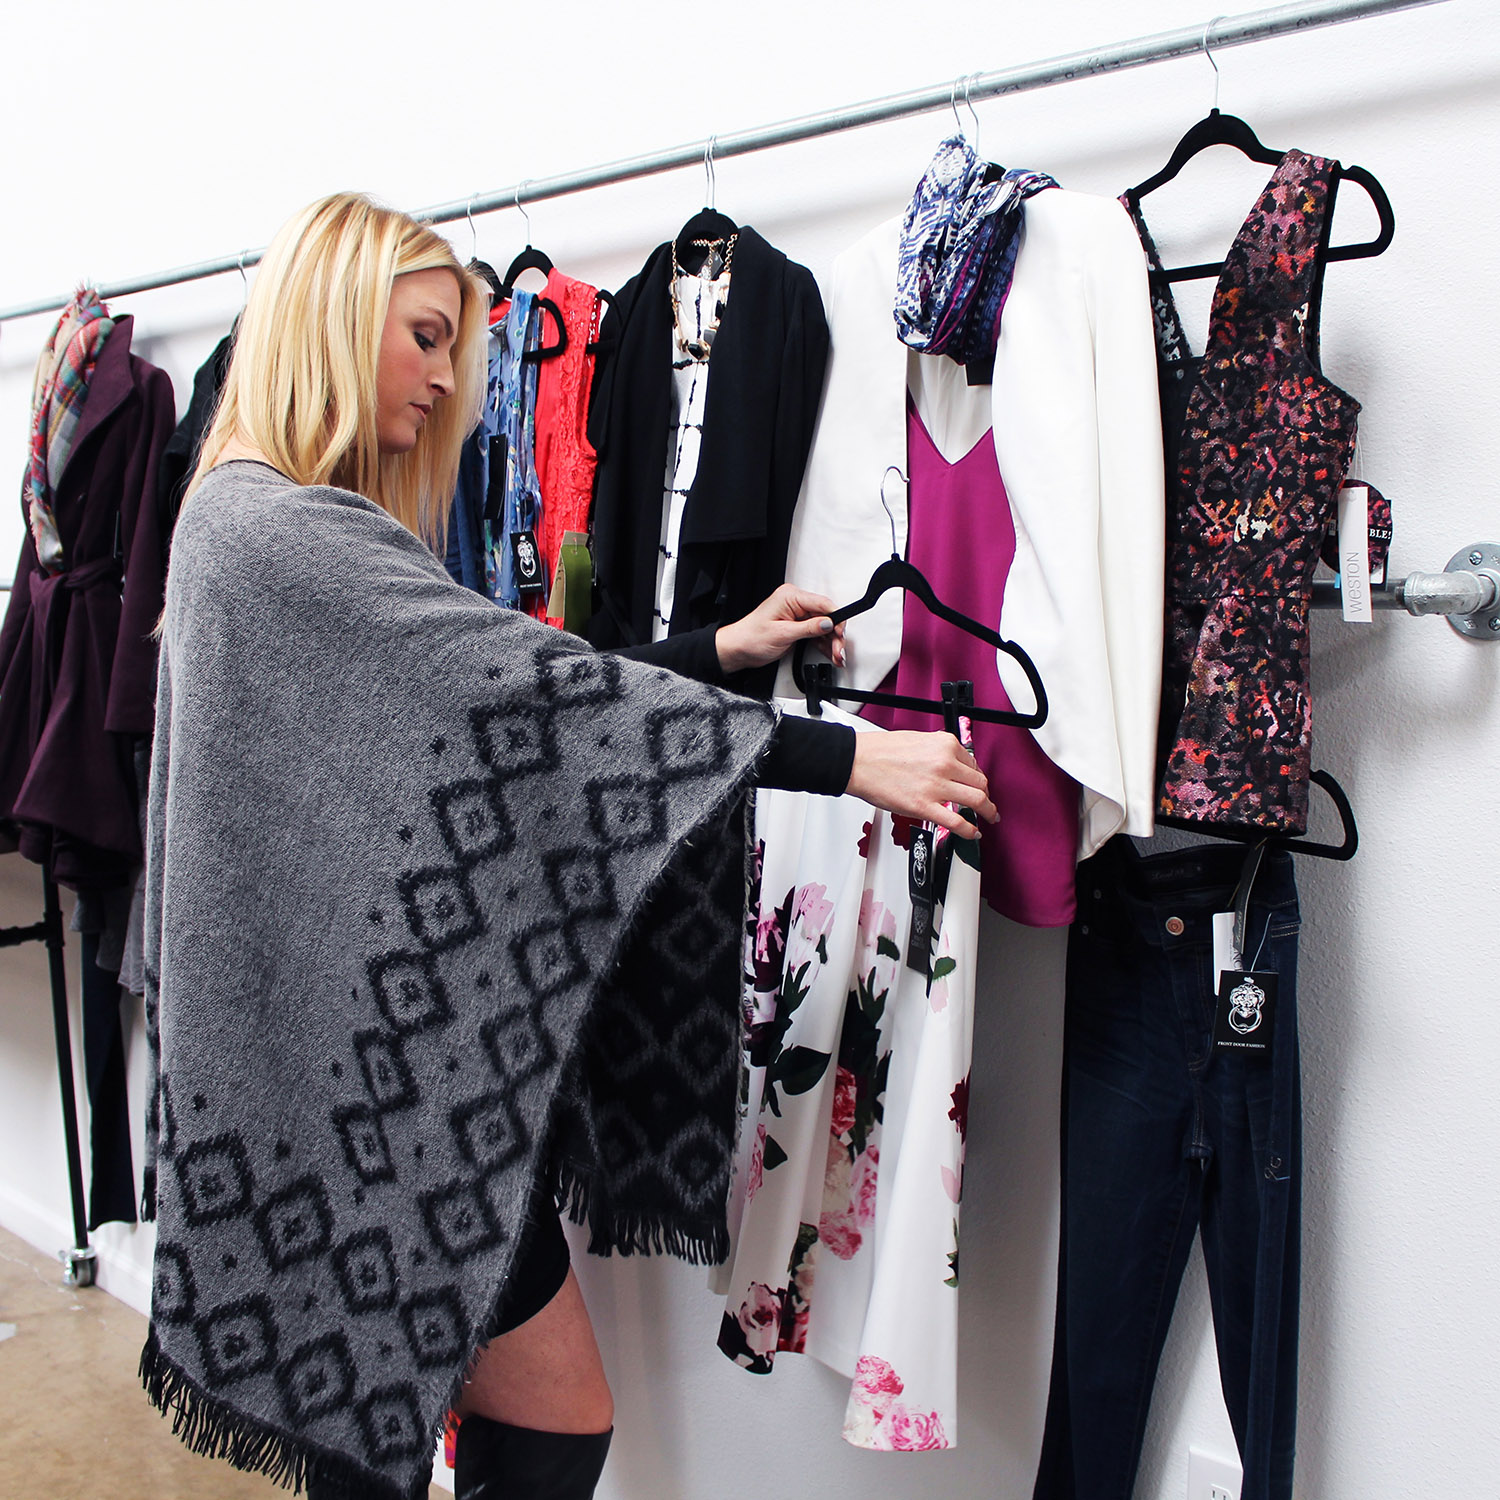 Front Door Fashion Stylist, Morgan styling outfits